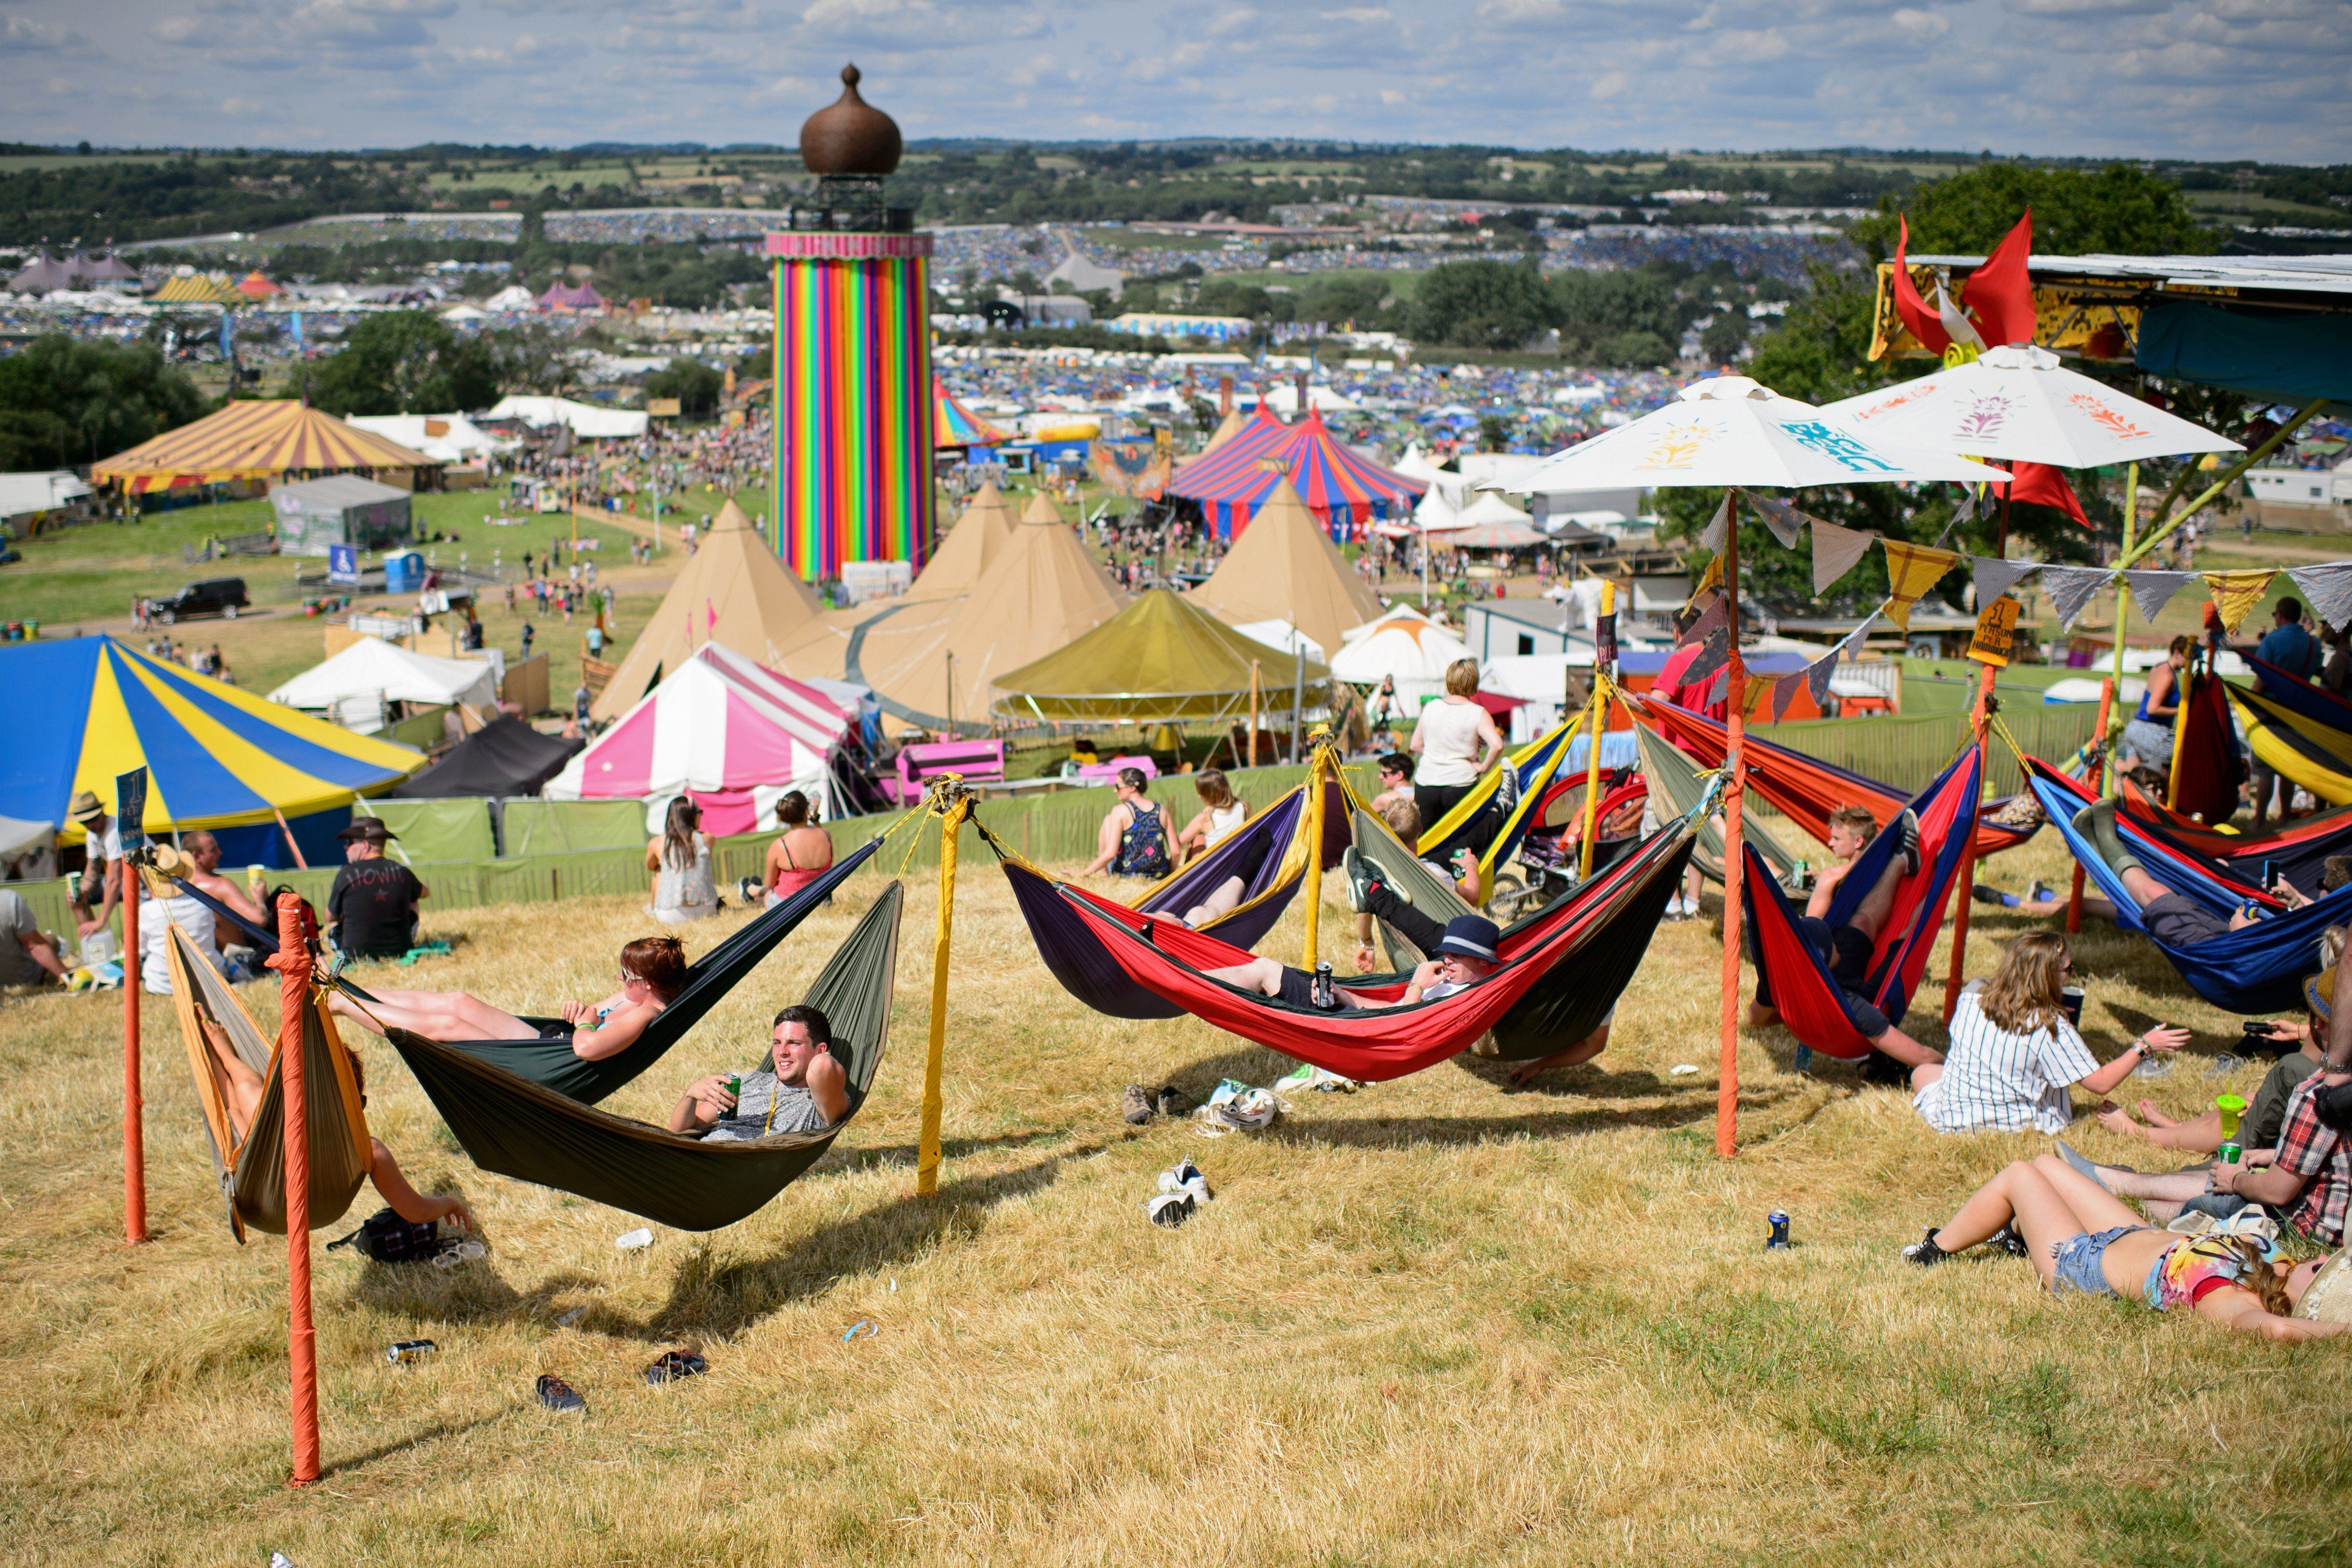 We Don't Want To Jinx It, But The Glastonbury Weather Reports Are Looking Seriously